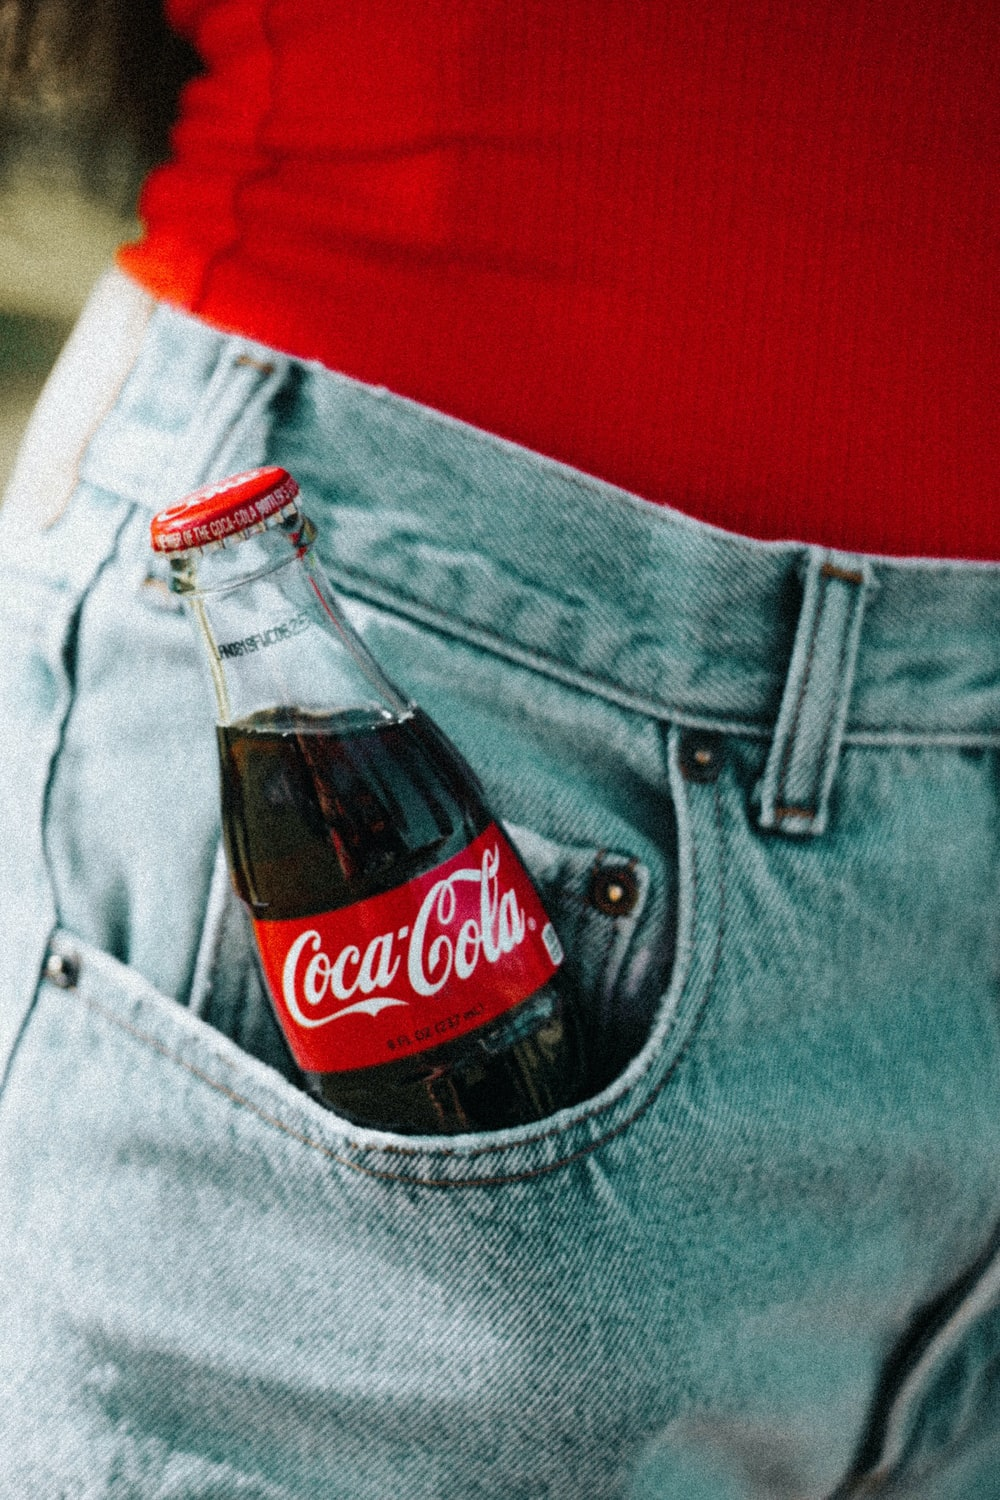 500+ Coca Cola Pictures | Download Free Images on Unsplash